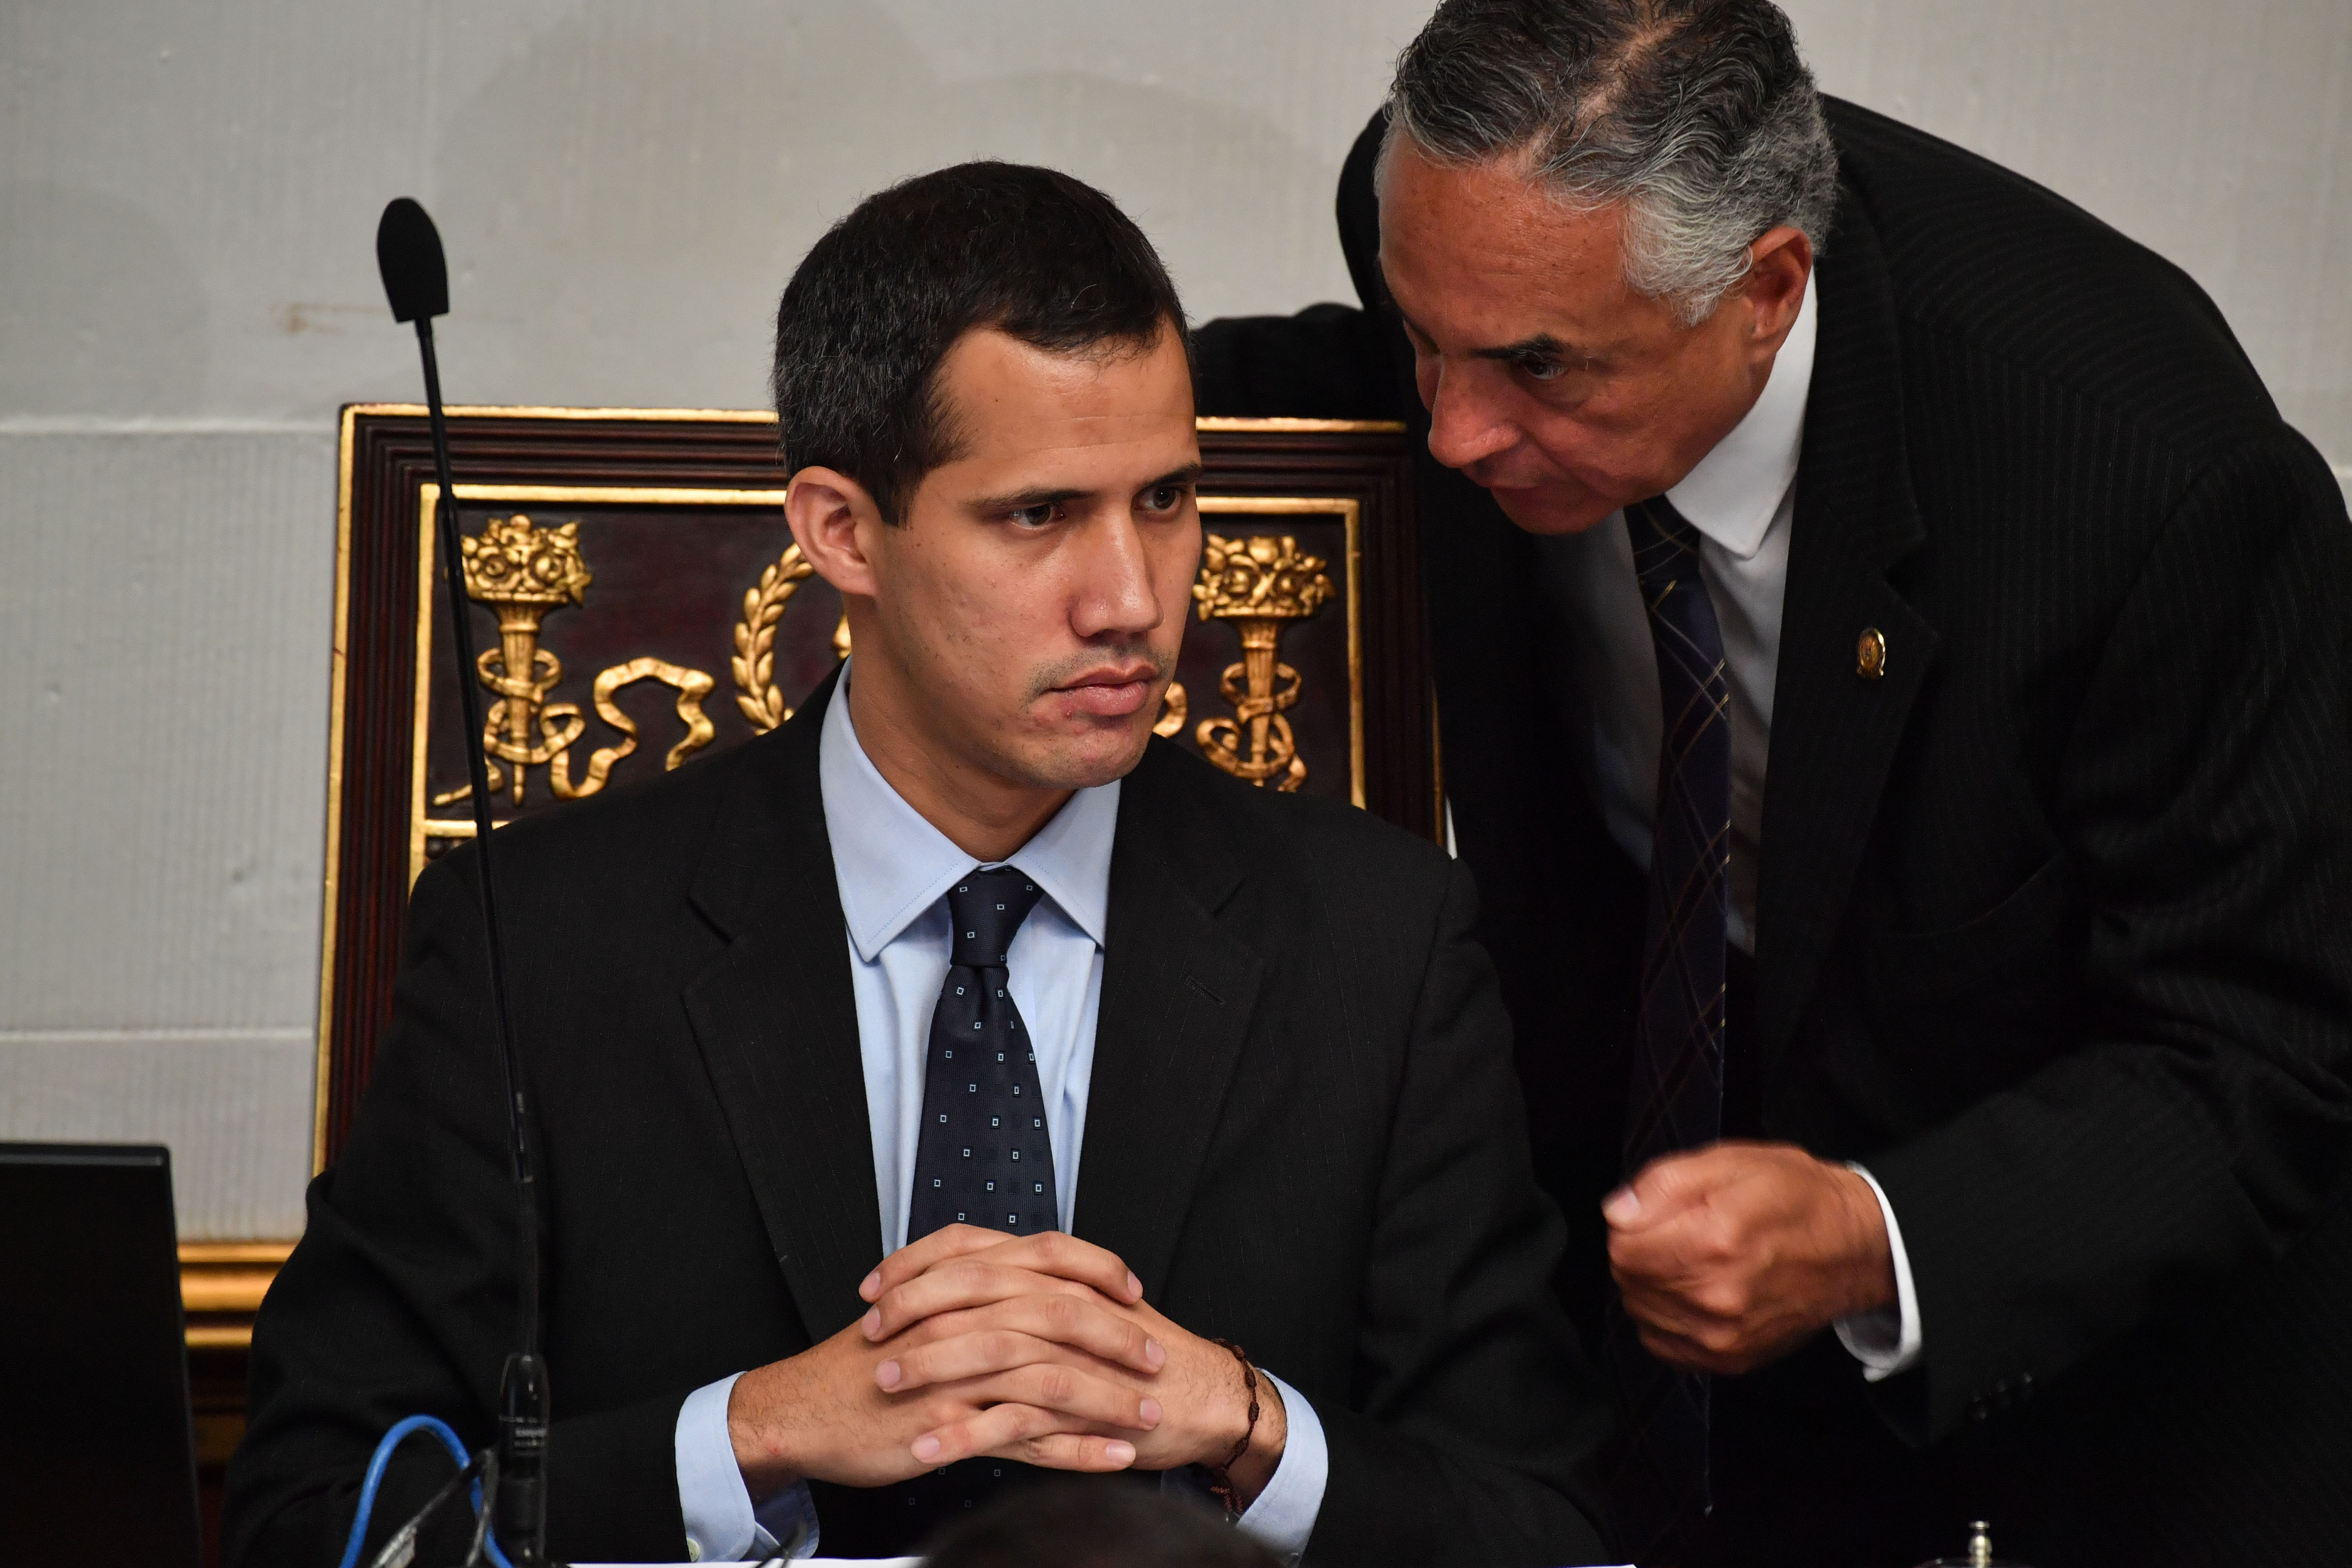 """Venezuela's National Assembly head and self-proclaimed """"acting president"""" Juan Guaido (L), listens to deputy Rafael Veloz, during a session at the National Assembly in Caracas on January 29, 2019. (YURI CORTEZ/AFP/Getty Images)"""